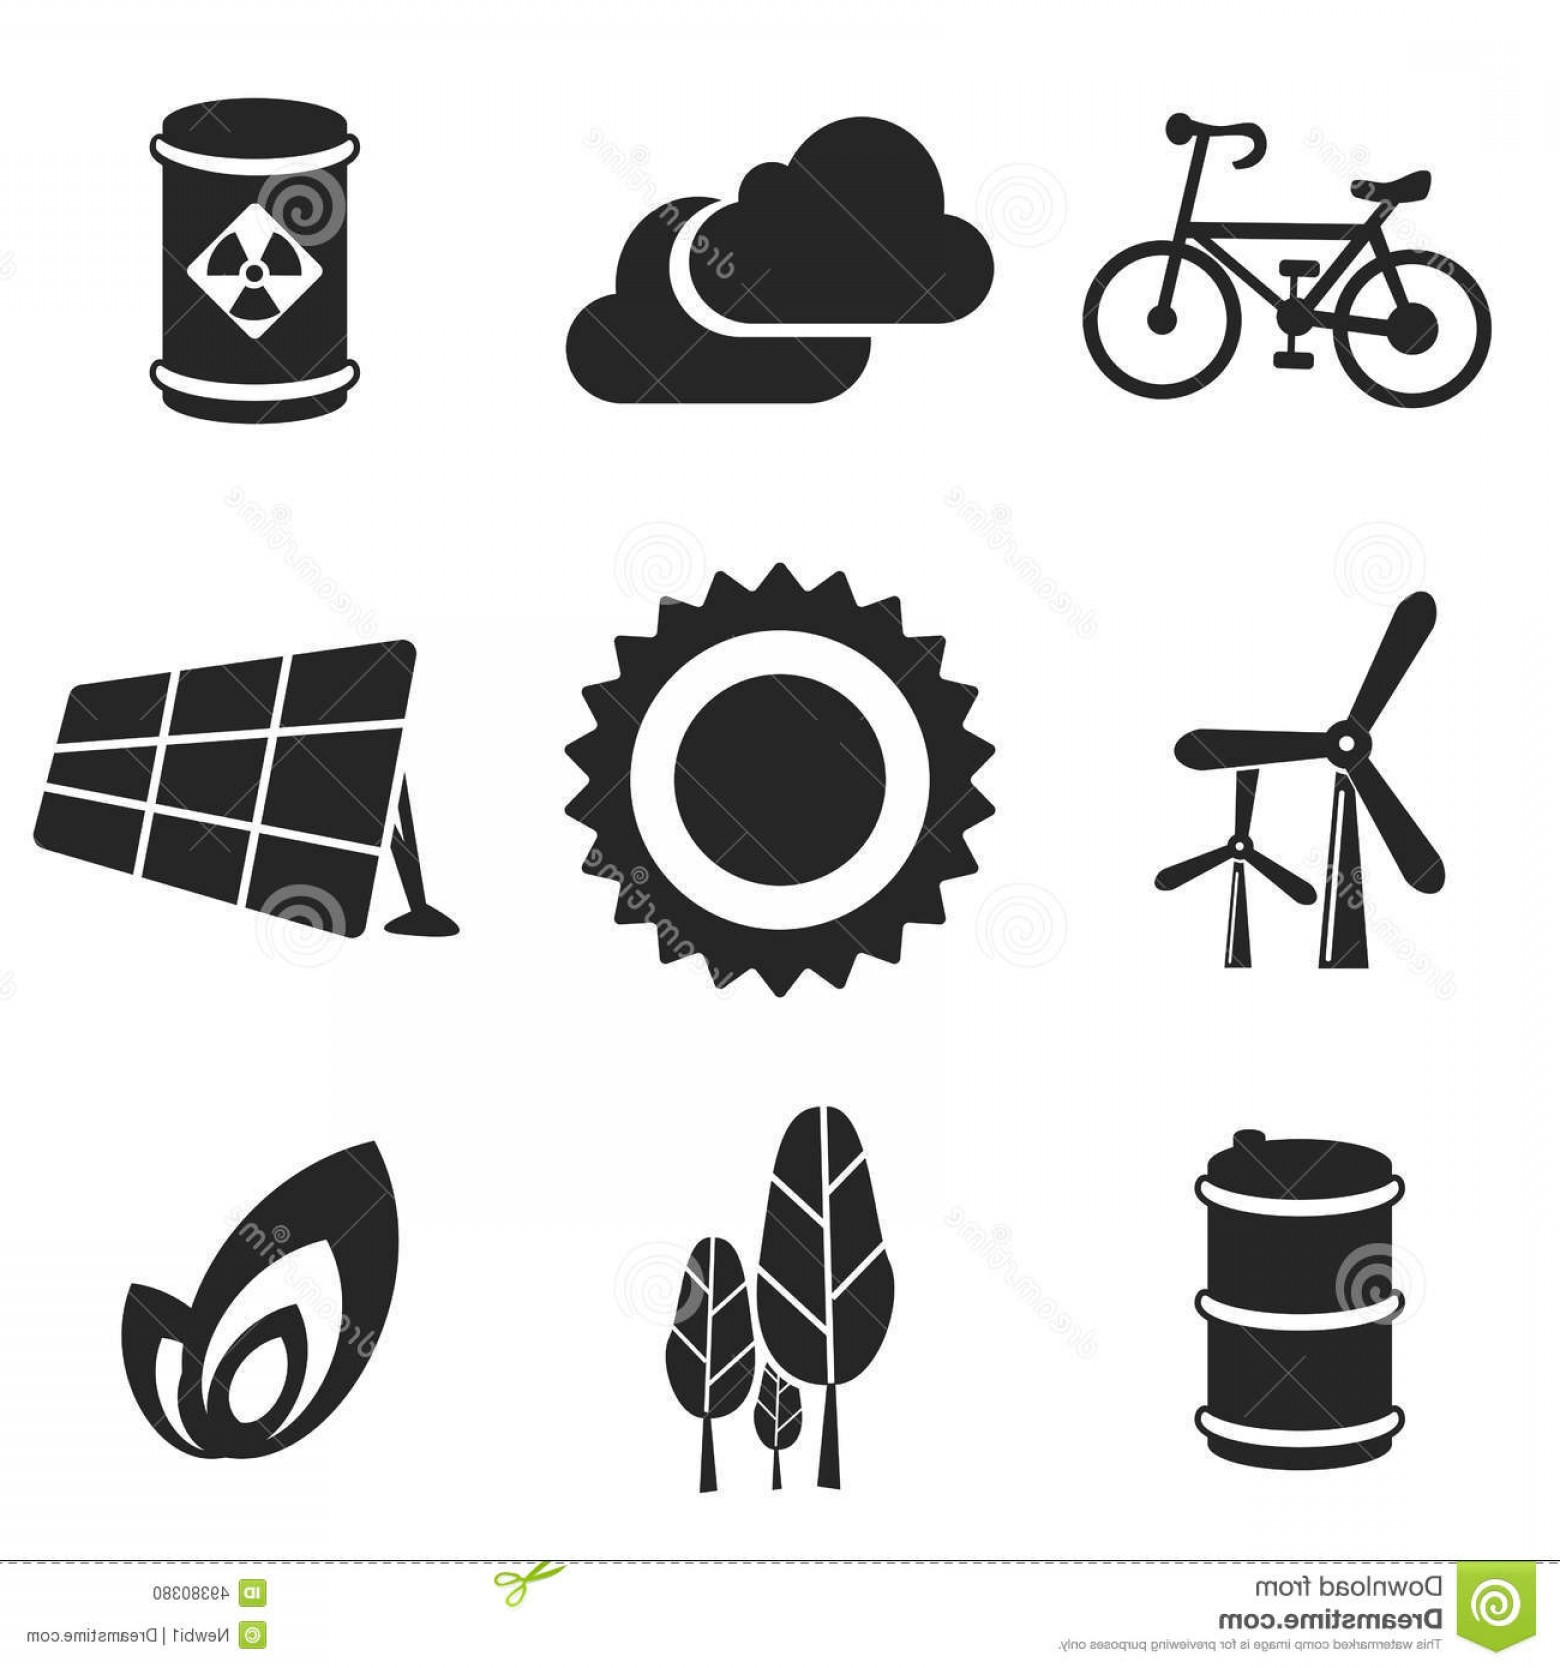 Solar Icon Vector: Stock Illustration Ecology Web Mobile Icons Set Vector Logo Symbols Sun Cloud Trees Bicycle Barrel Leaf Solar Cell Wind Turbine Image